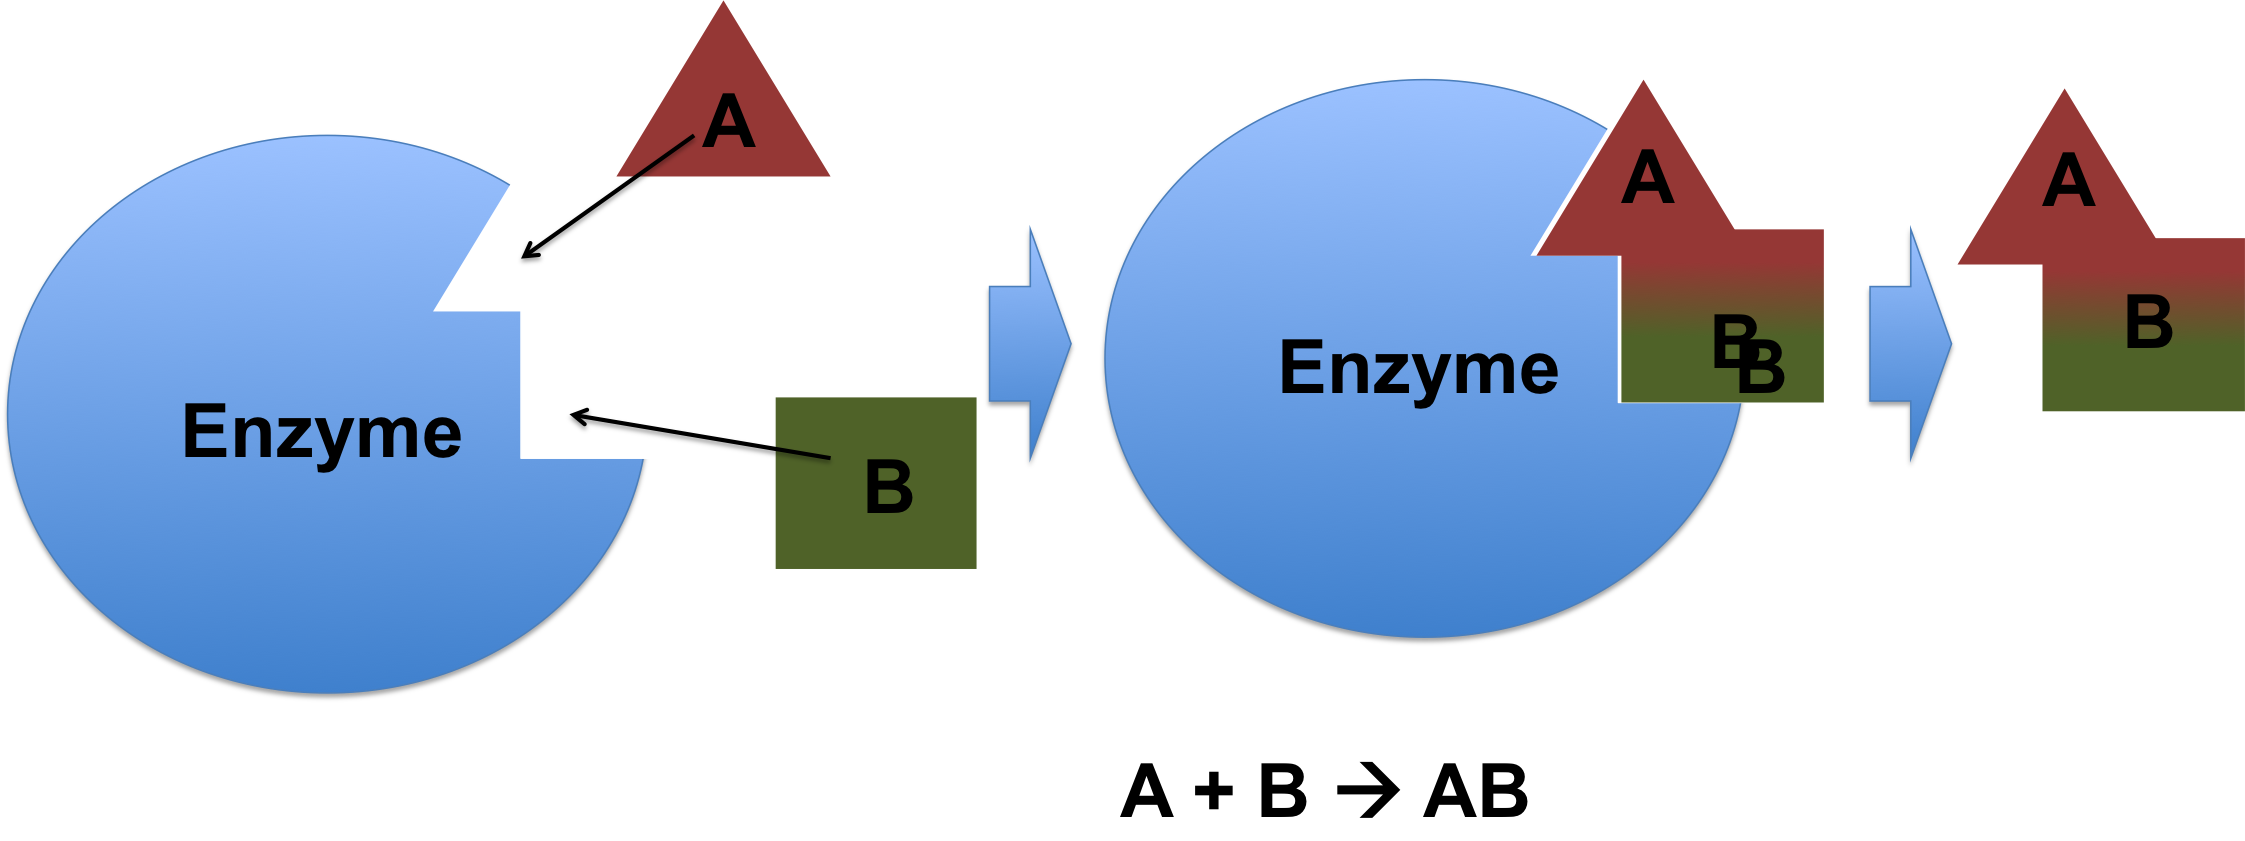 Enzyme drawing anabolic. Catalysis downhousesoftware an processing